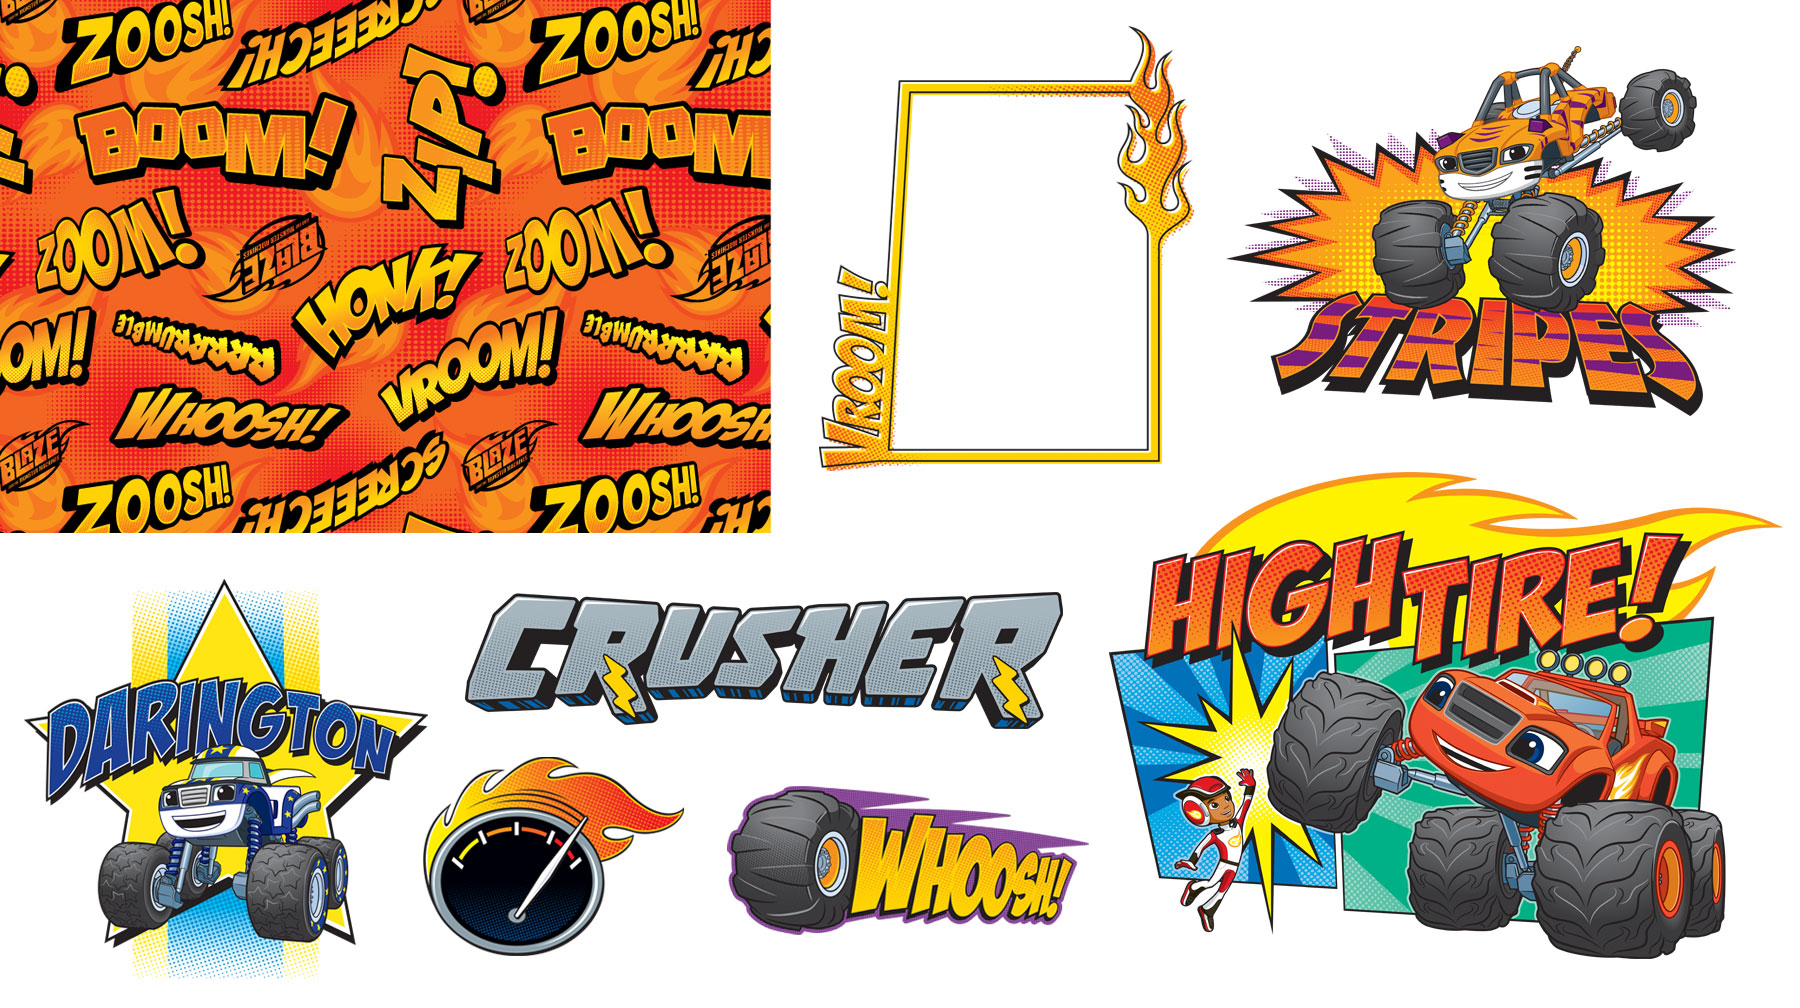 Blaze and the Monster Machines Style Guide Design Elements 2